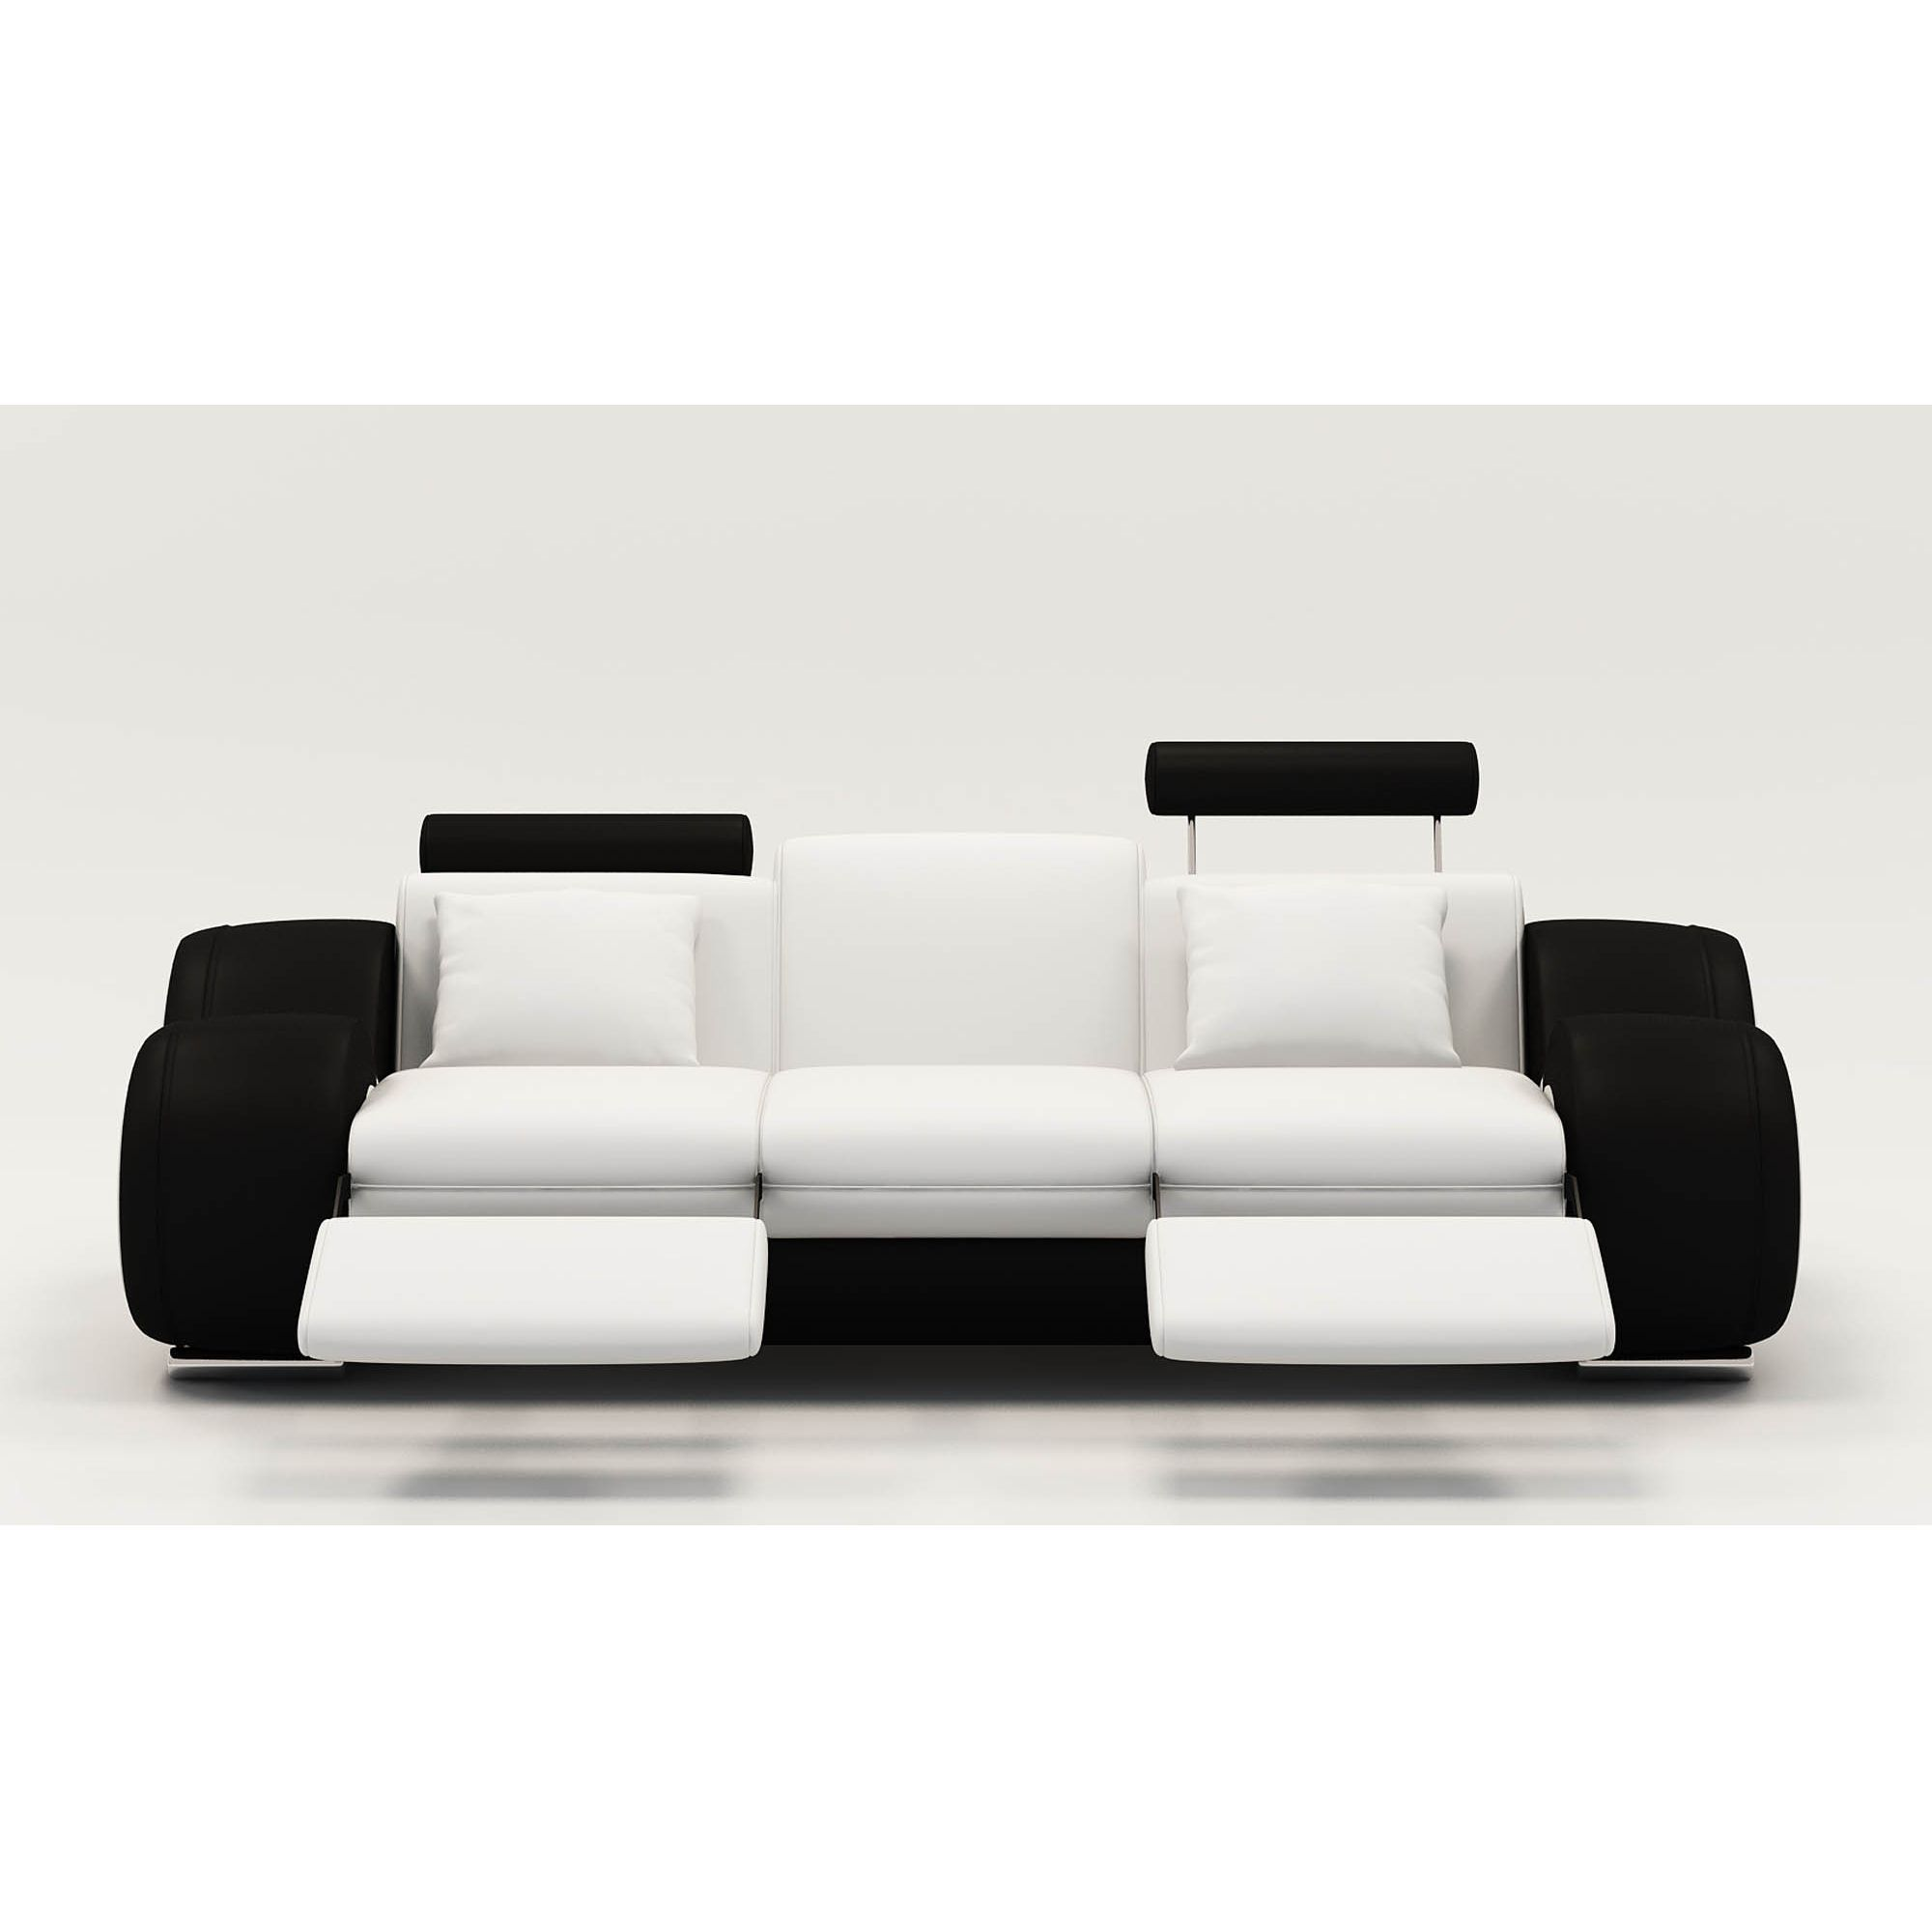 Deco in paris ensemble canape relax design 3 2 places blanc et noir oslo os - Canape noir et blanc but ...